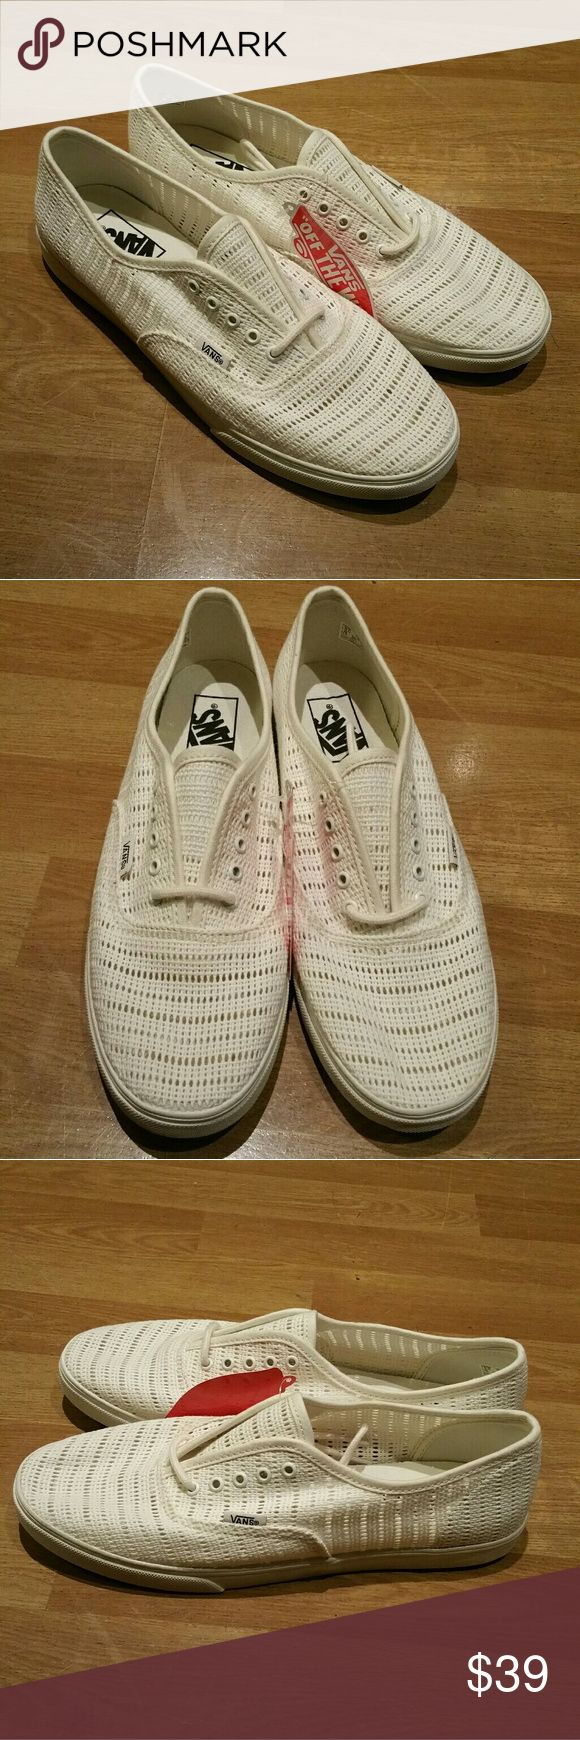 Womens Vans sneakers Brand new. Size 9.5. Never worn. Vans Shoes Sneakers